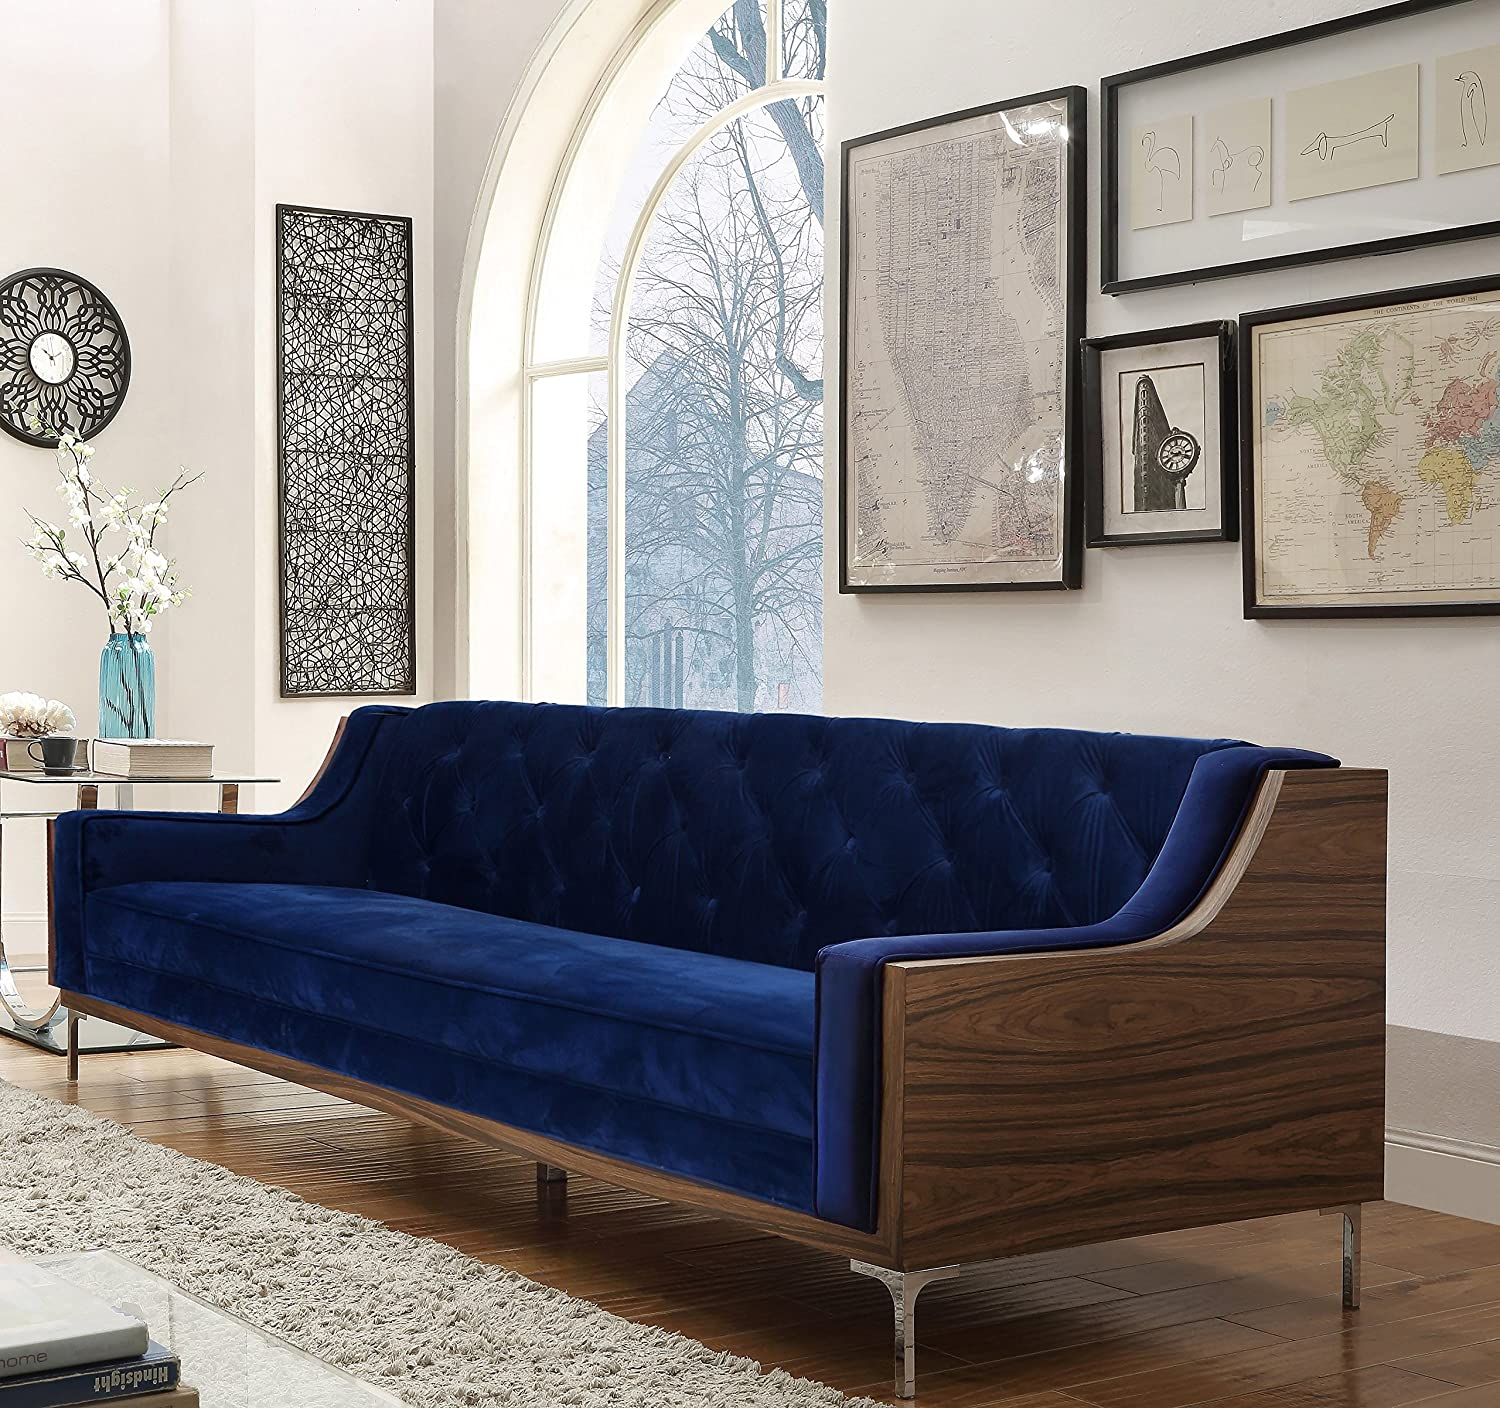 Iconic Home Clark Modern Contemporary Navy Blue Velvet Tufted Swoop Arm Sofa with Walnut Finish Silvertone Chrome Legs